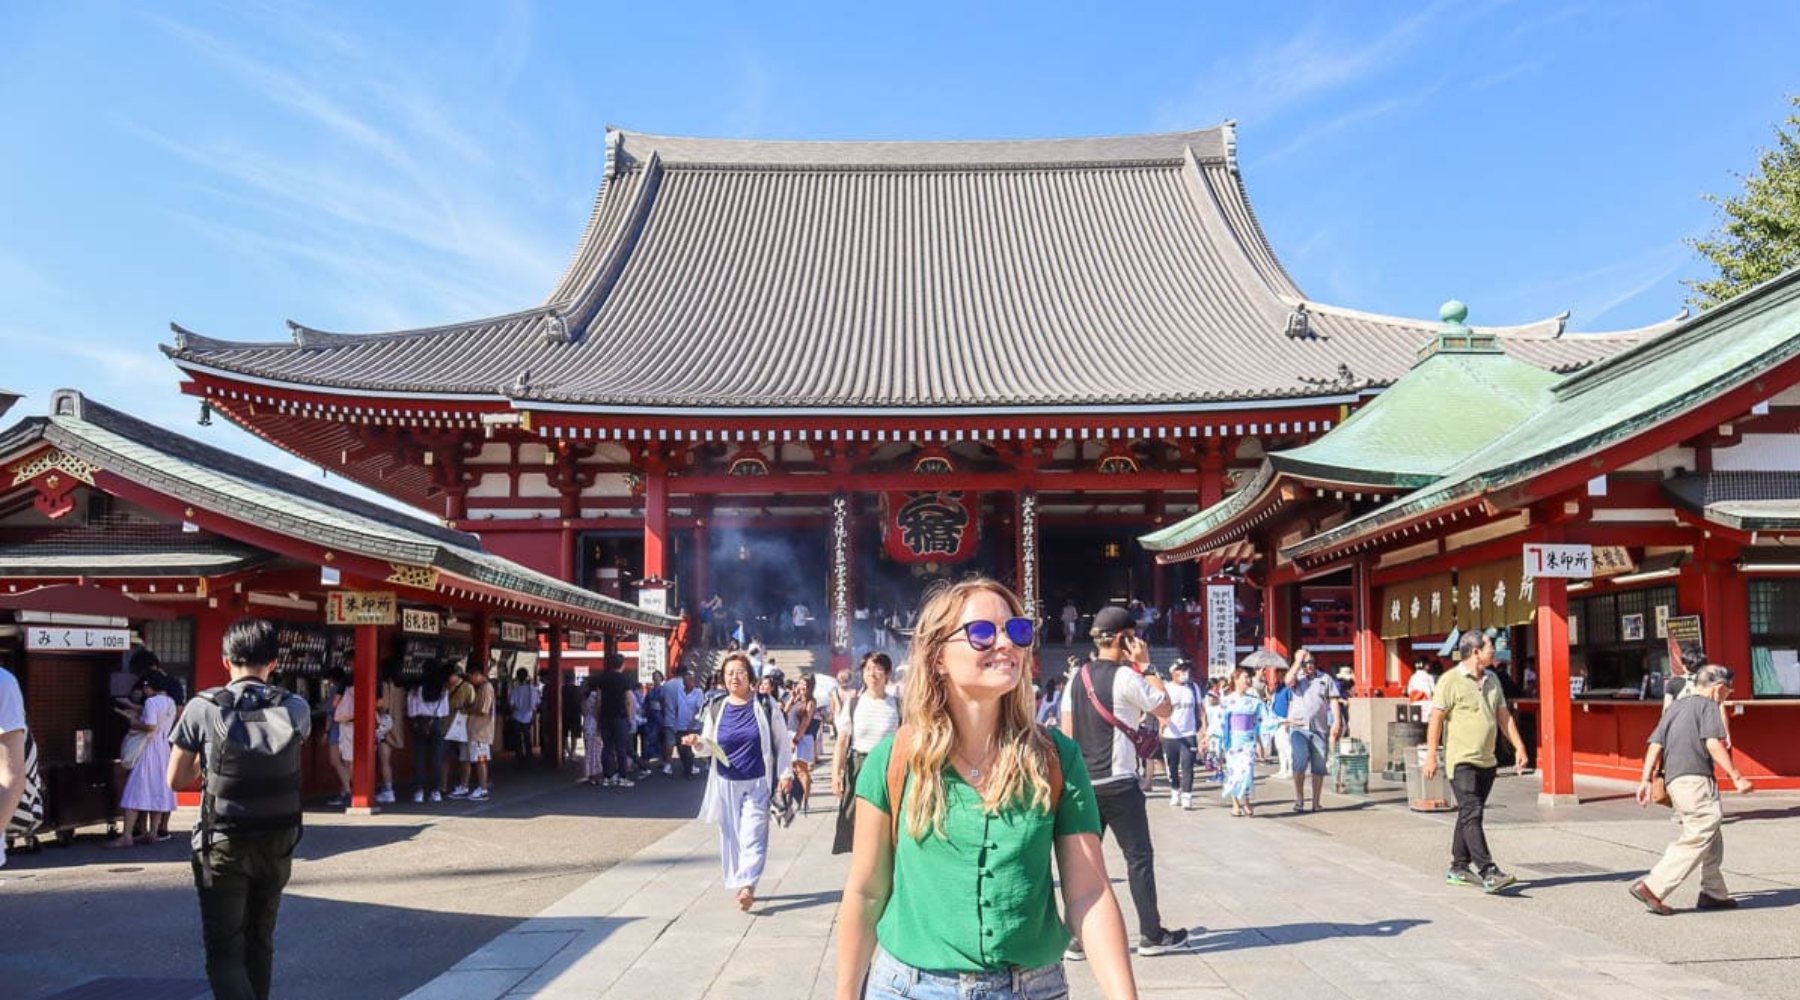 NEW List of Tokyo Travel Blogs and Websites for Publishing Guest Posts